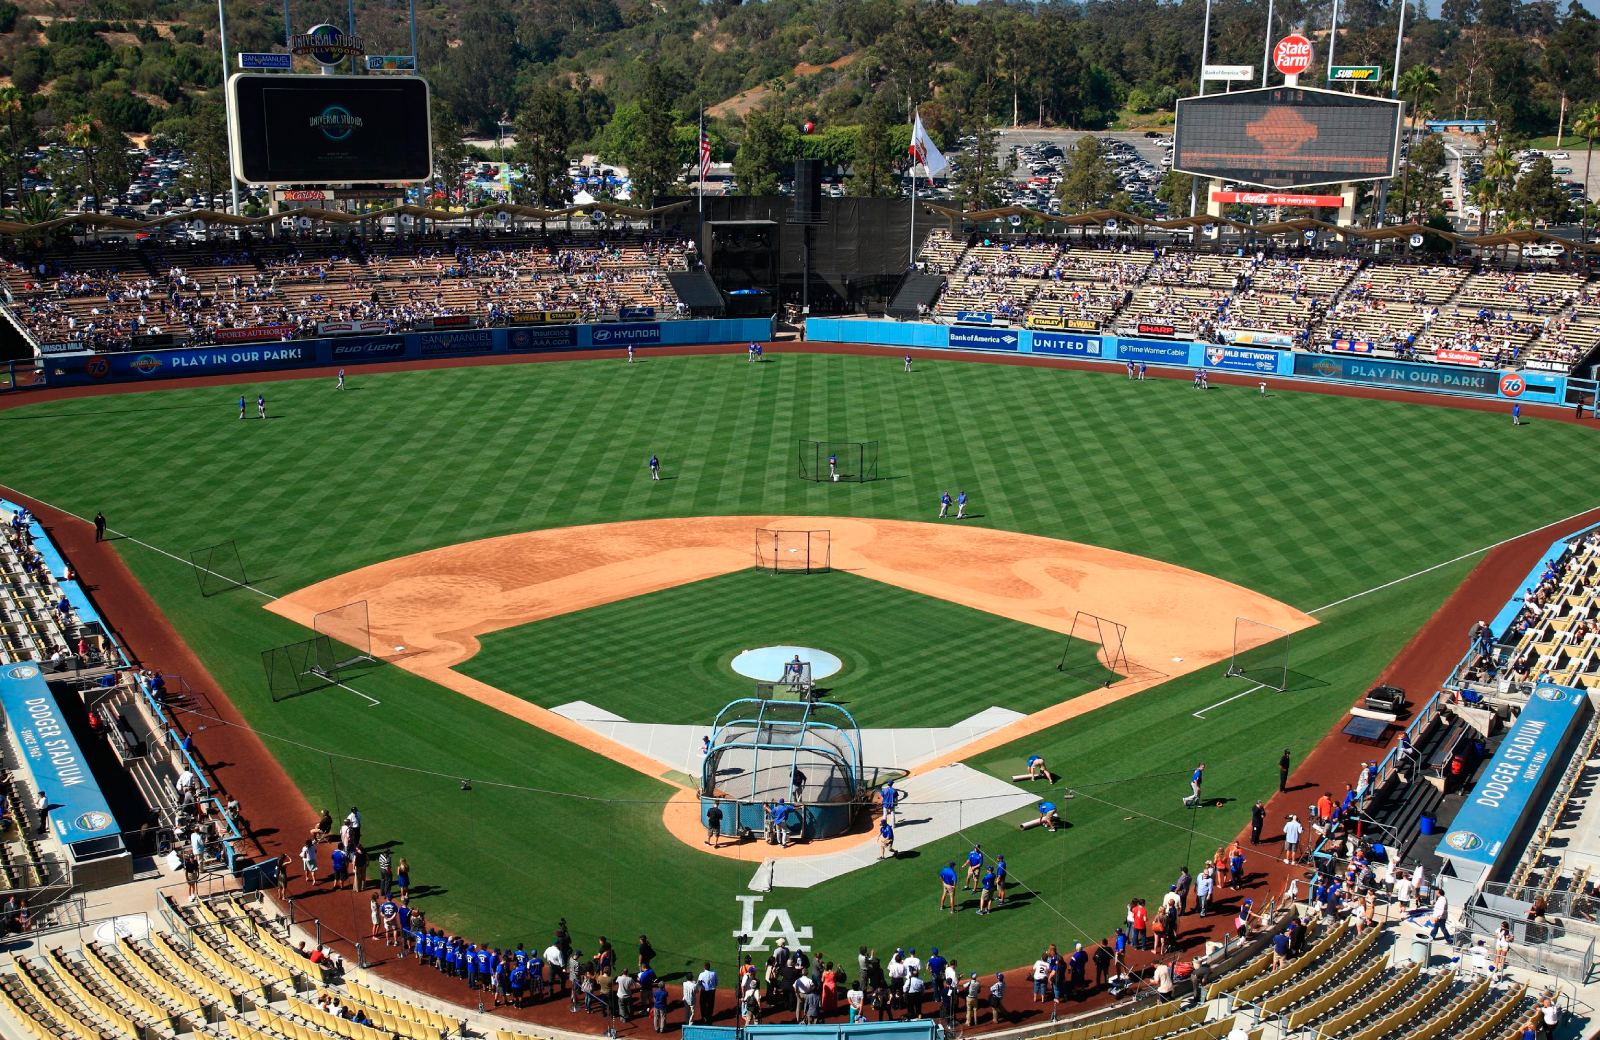 Los Angeles Dodgers Baseball - Altana Apts